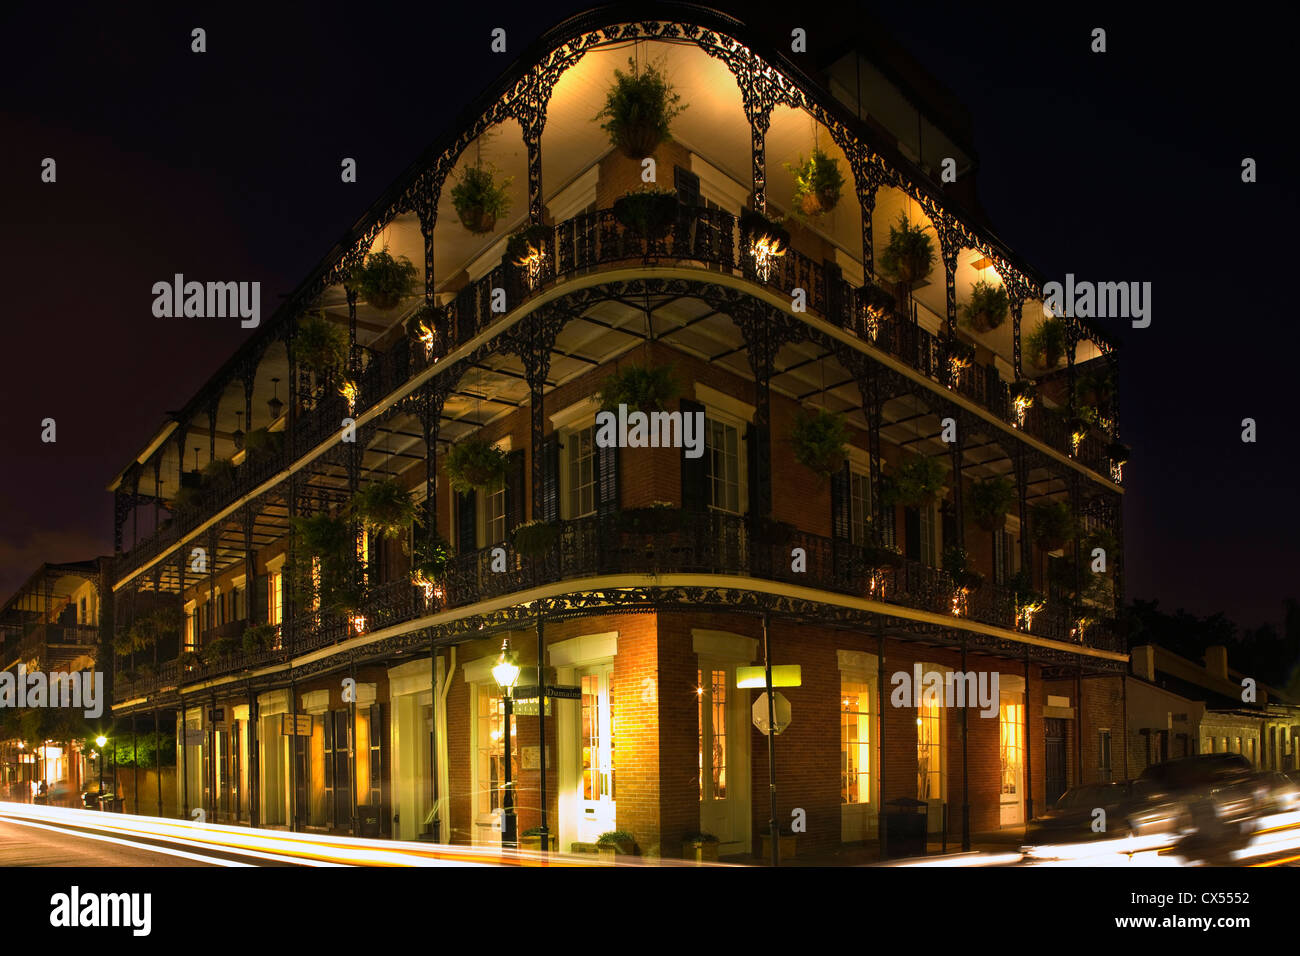 MILTENBERGER HOUSE ROYAL STREET FRENCH QUARTER DOWNTOWN NEW ORLEANS LOUISIANA USA - Stock Image